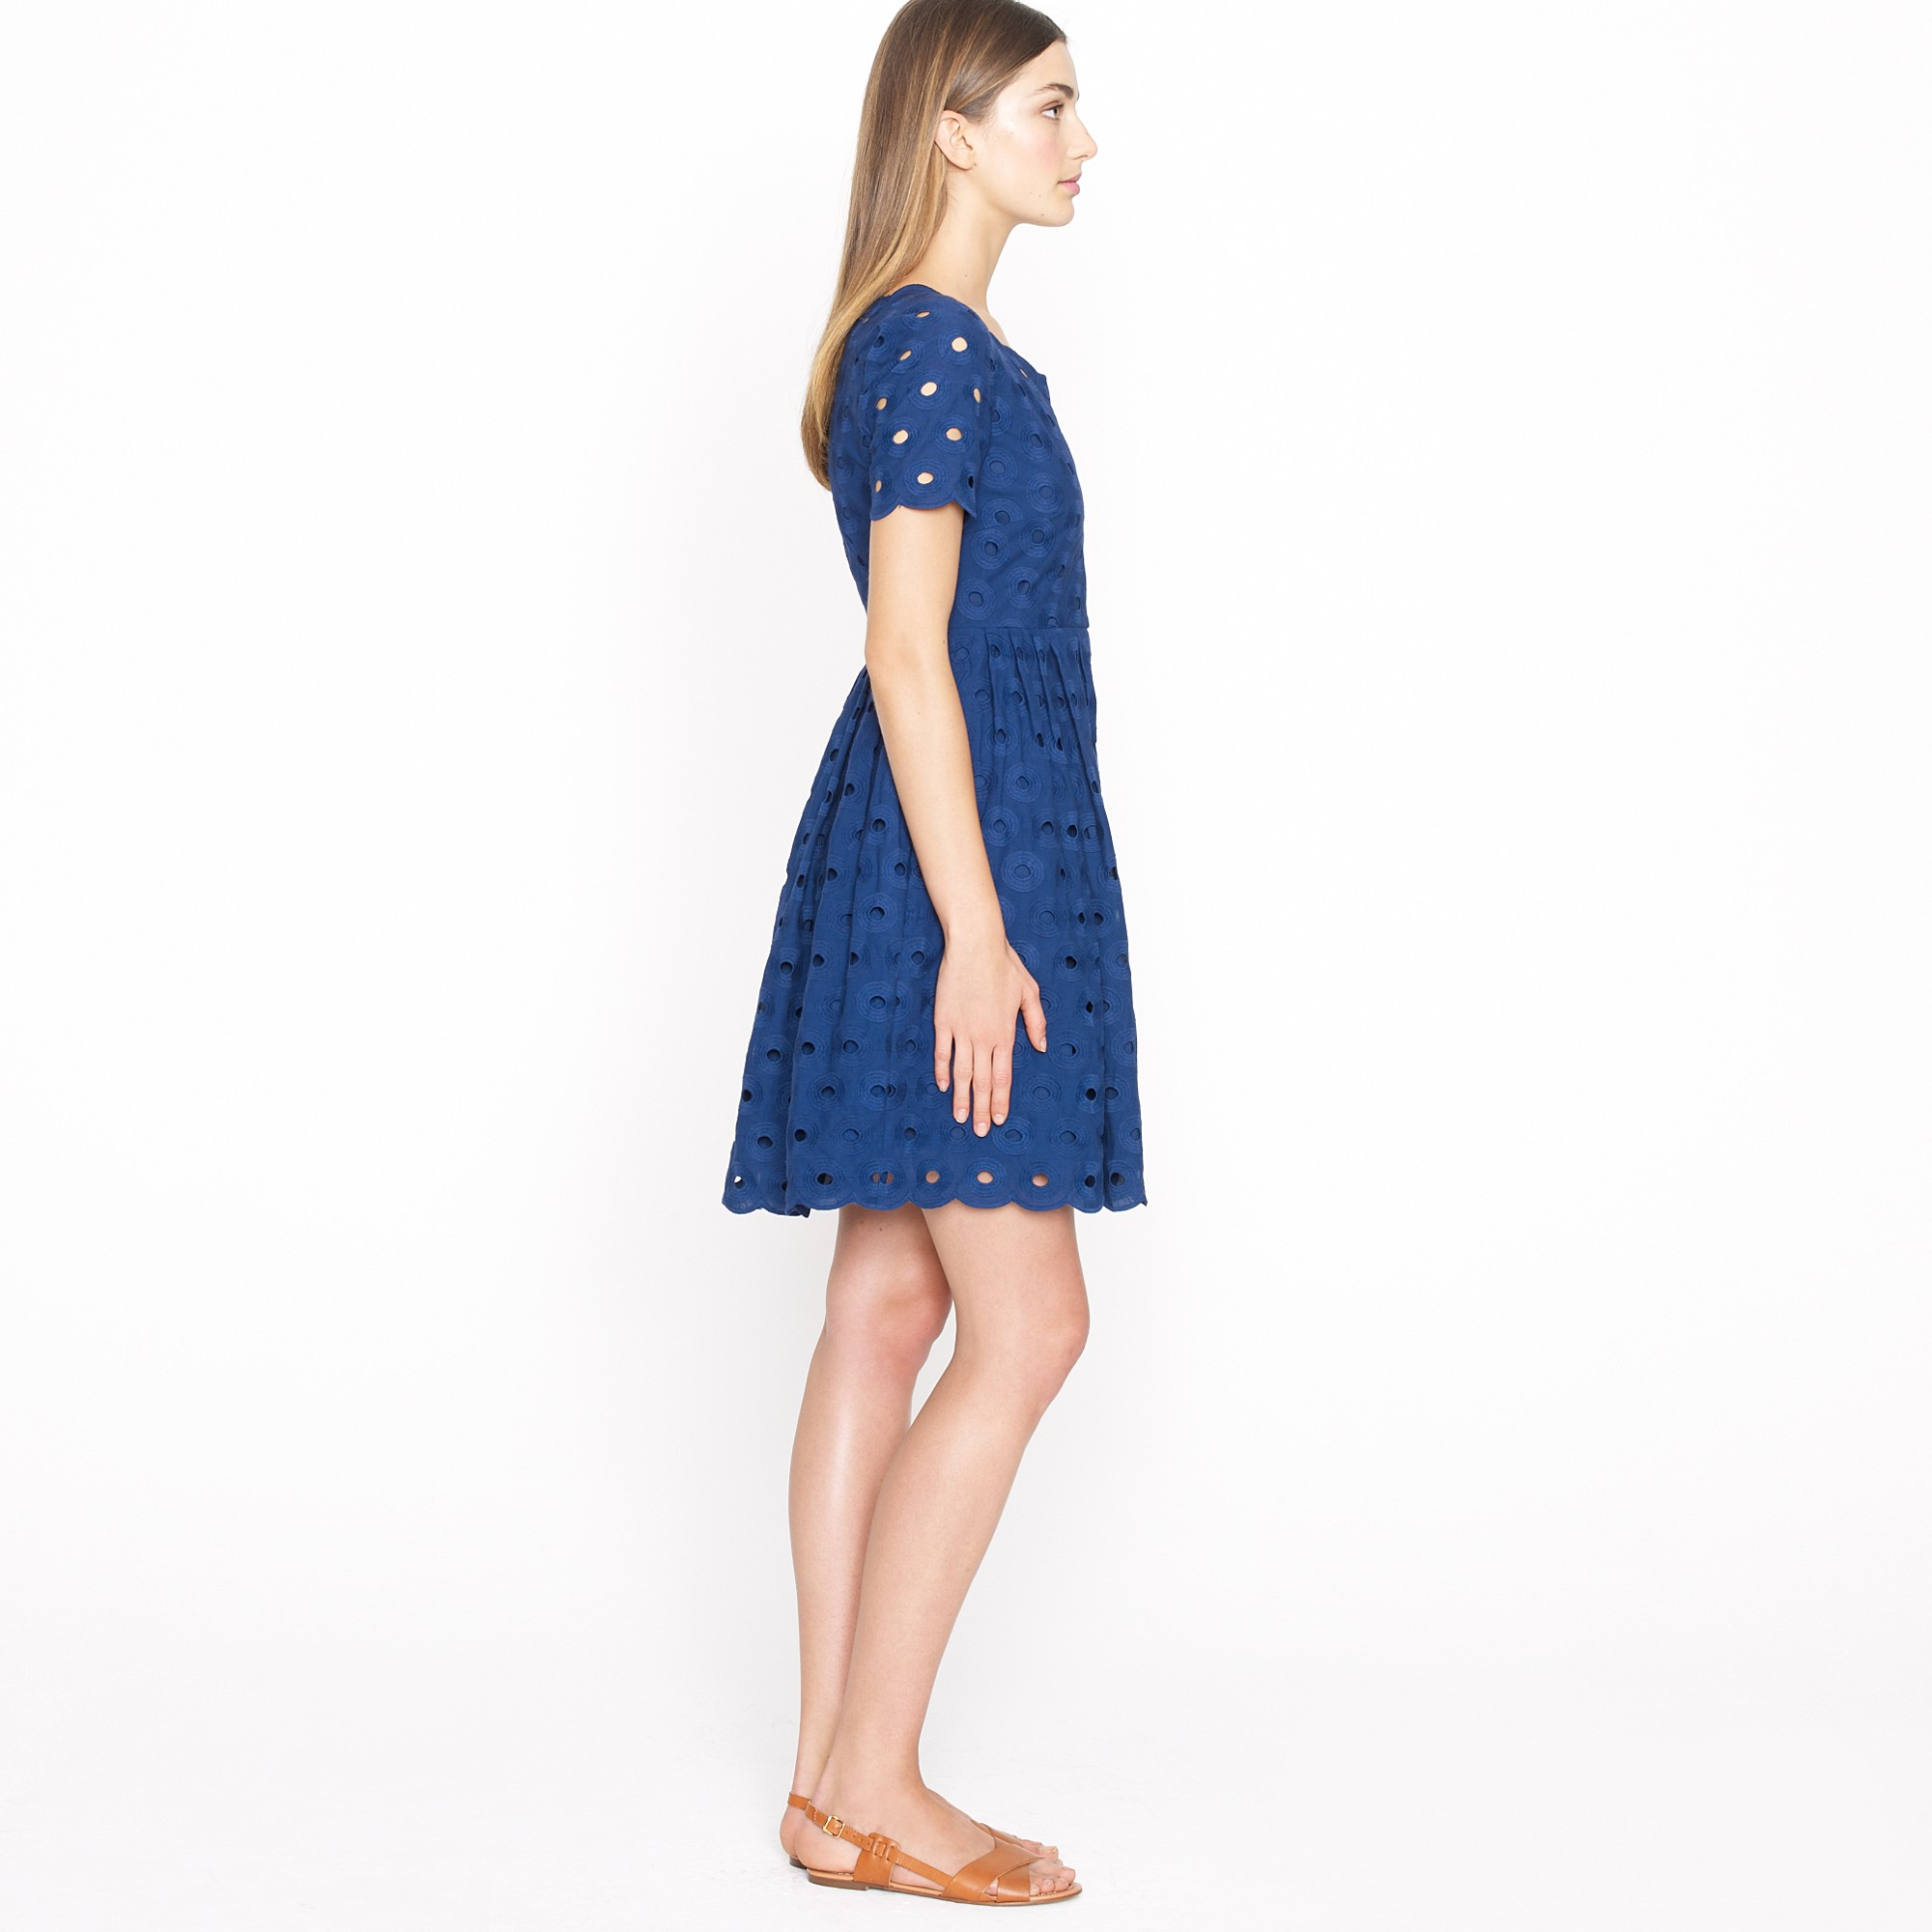 78173a1172e Lyst - J.Crew Circle Eyelet Dress in Blue